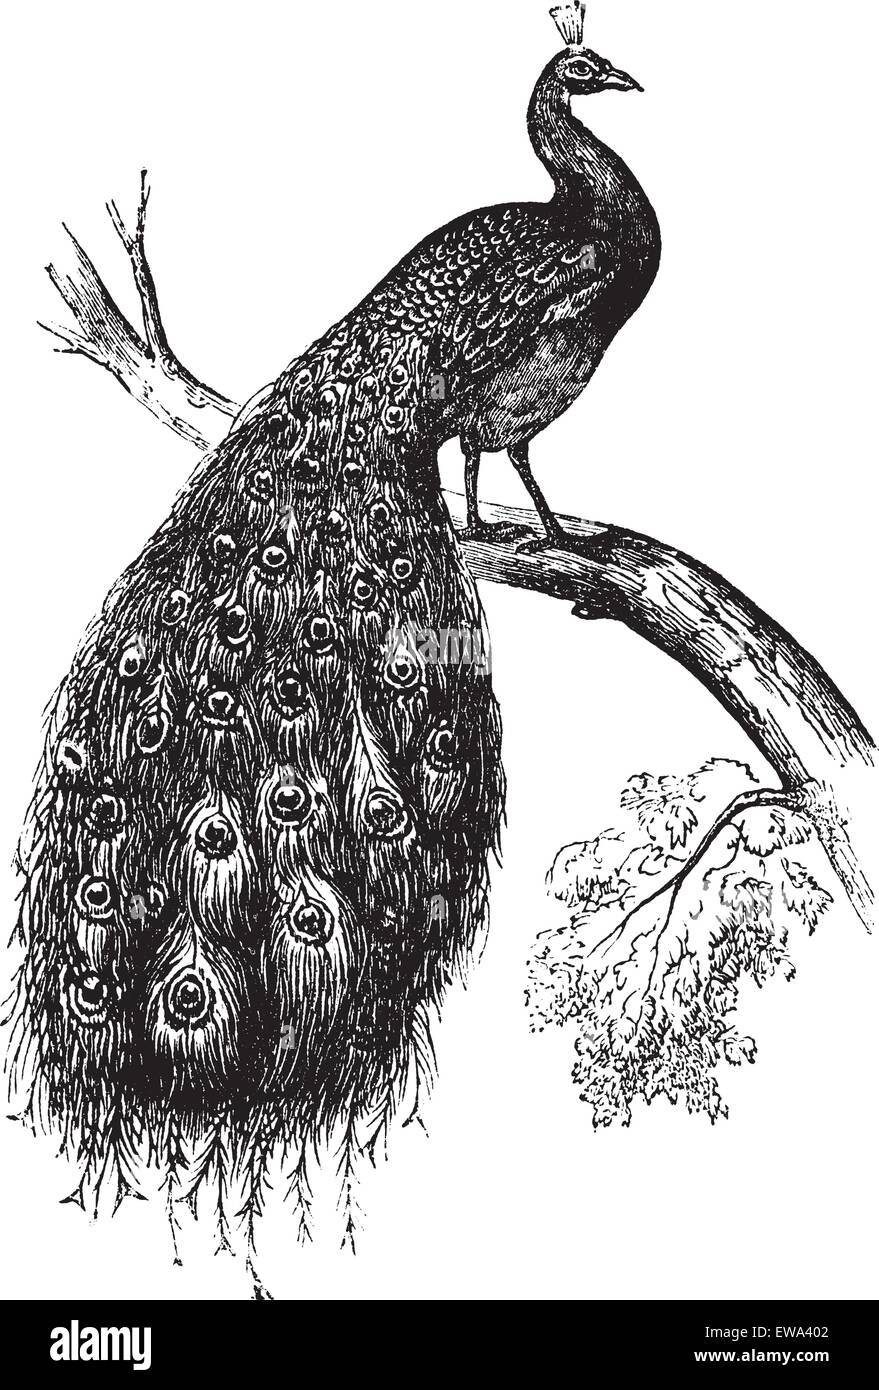 Indian Peafowl or Blue Peafowl or Pavo cristatus, vintage engraved illustration. Trousset encyclopedia (1886 - 1891). - Stock Image